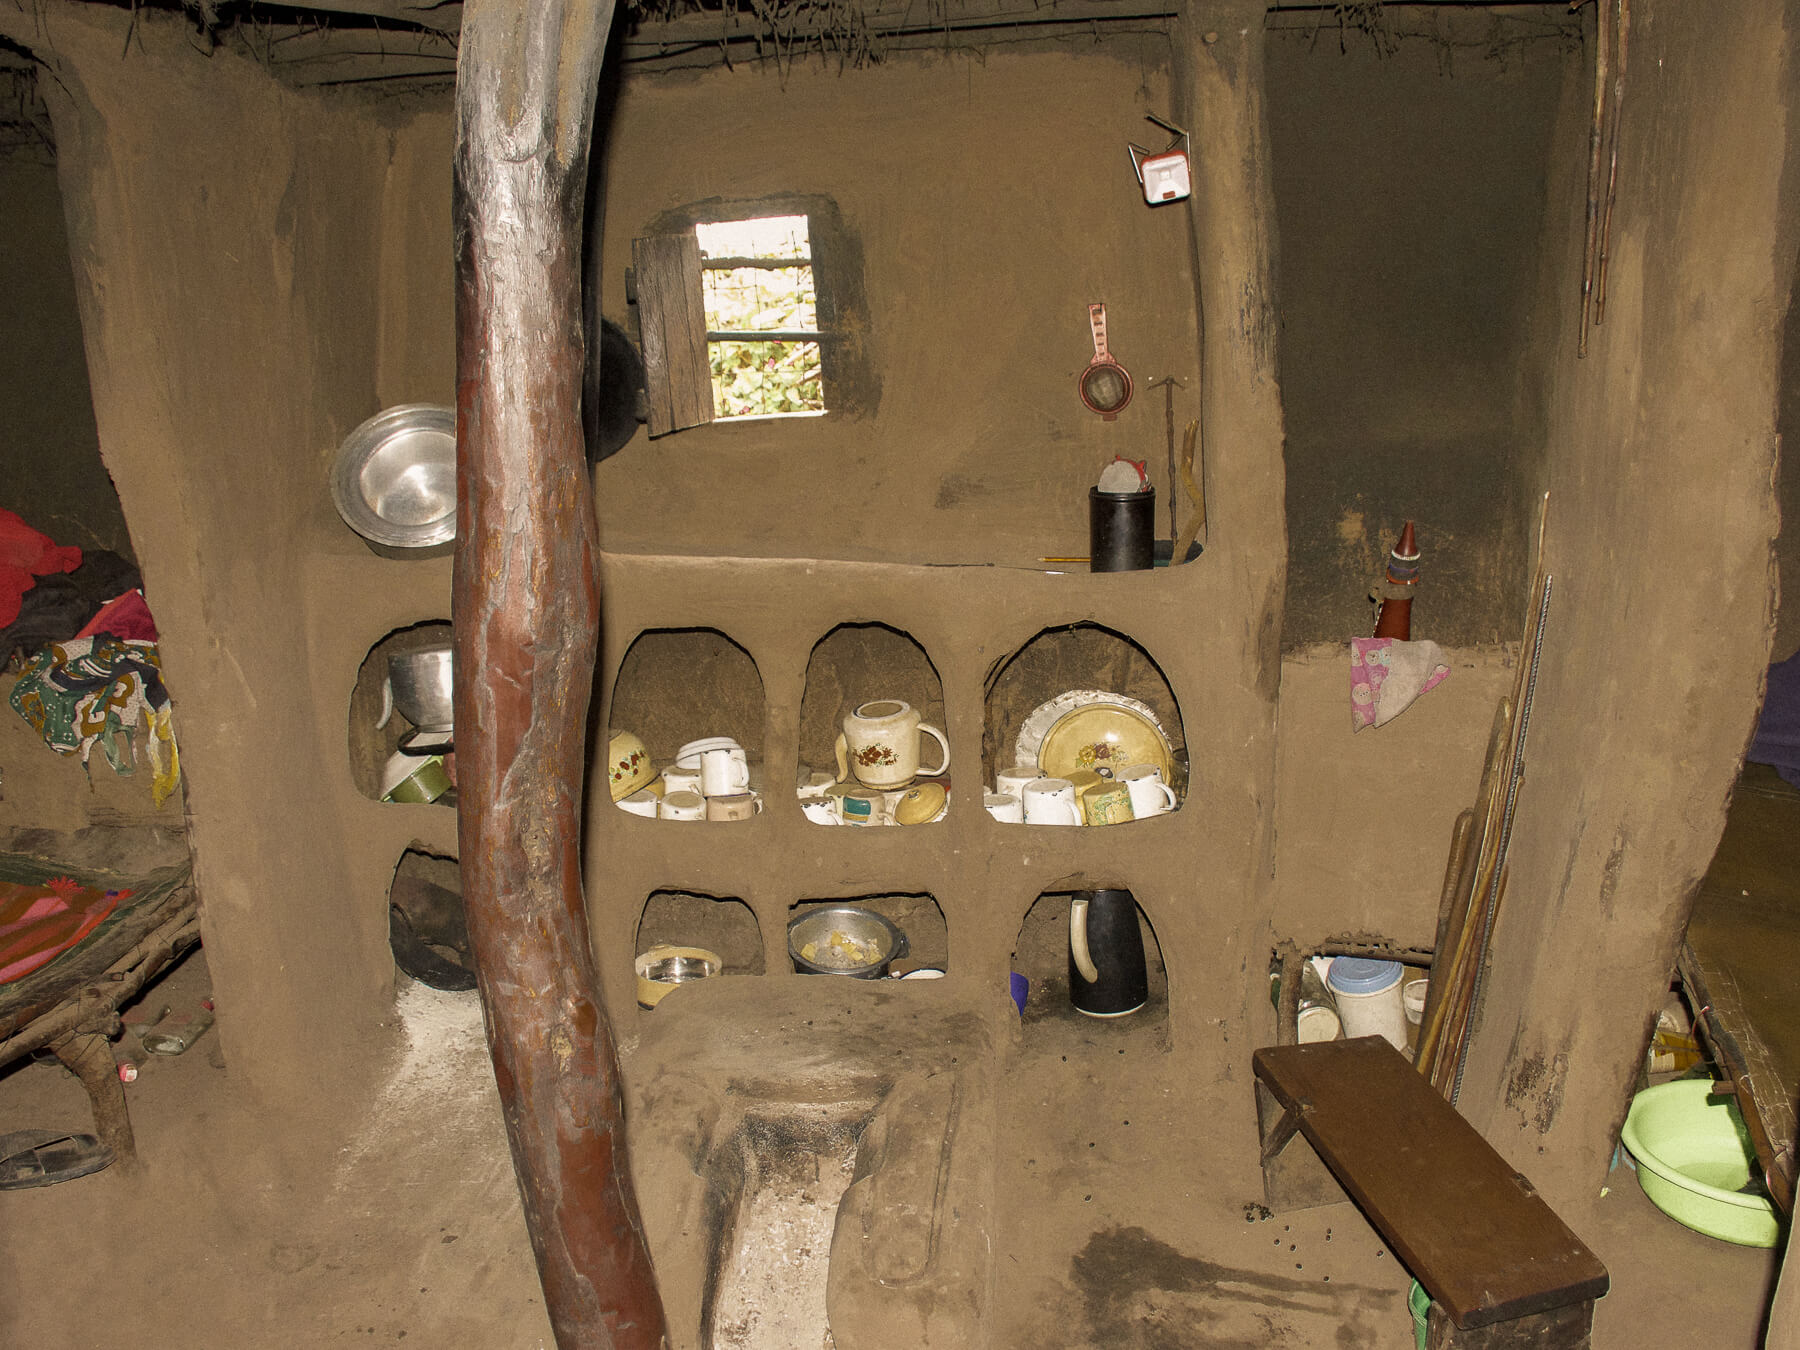 Looking inside a Maasai house at bedding made of cow skin, and kitchen and walls made of cow poo and mud